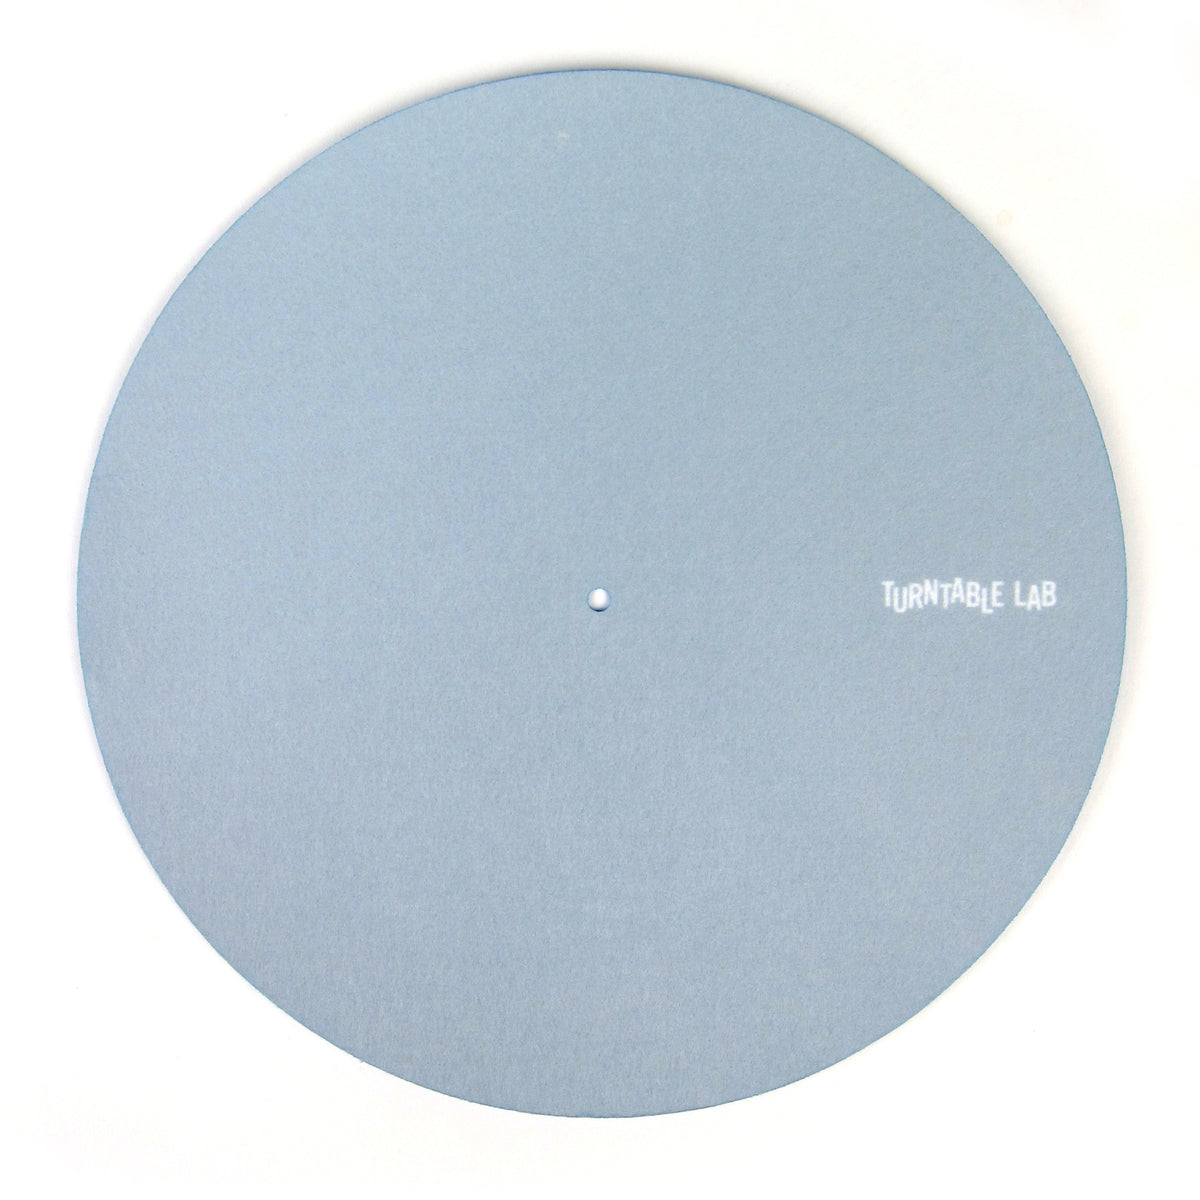 Turntable Lab: Switchmat Reversible Slipmat - Blue / Grey (Single)